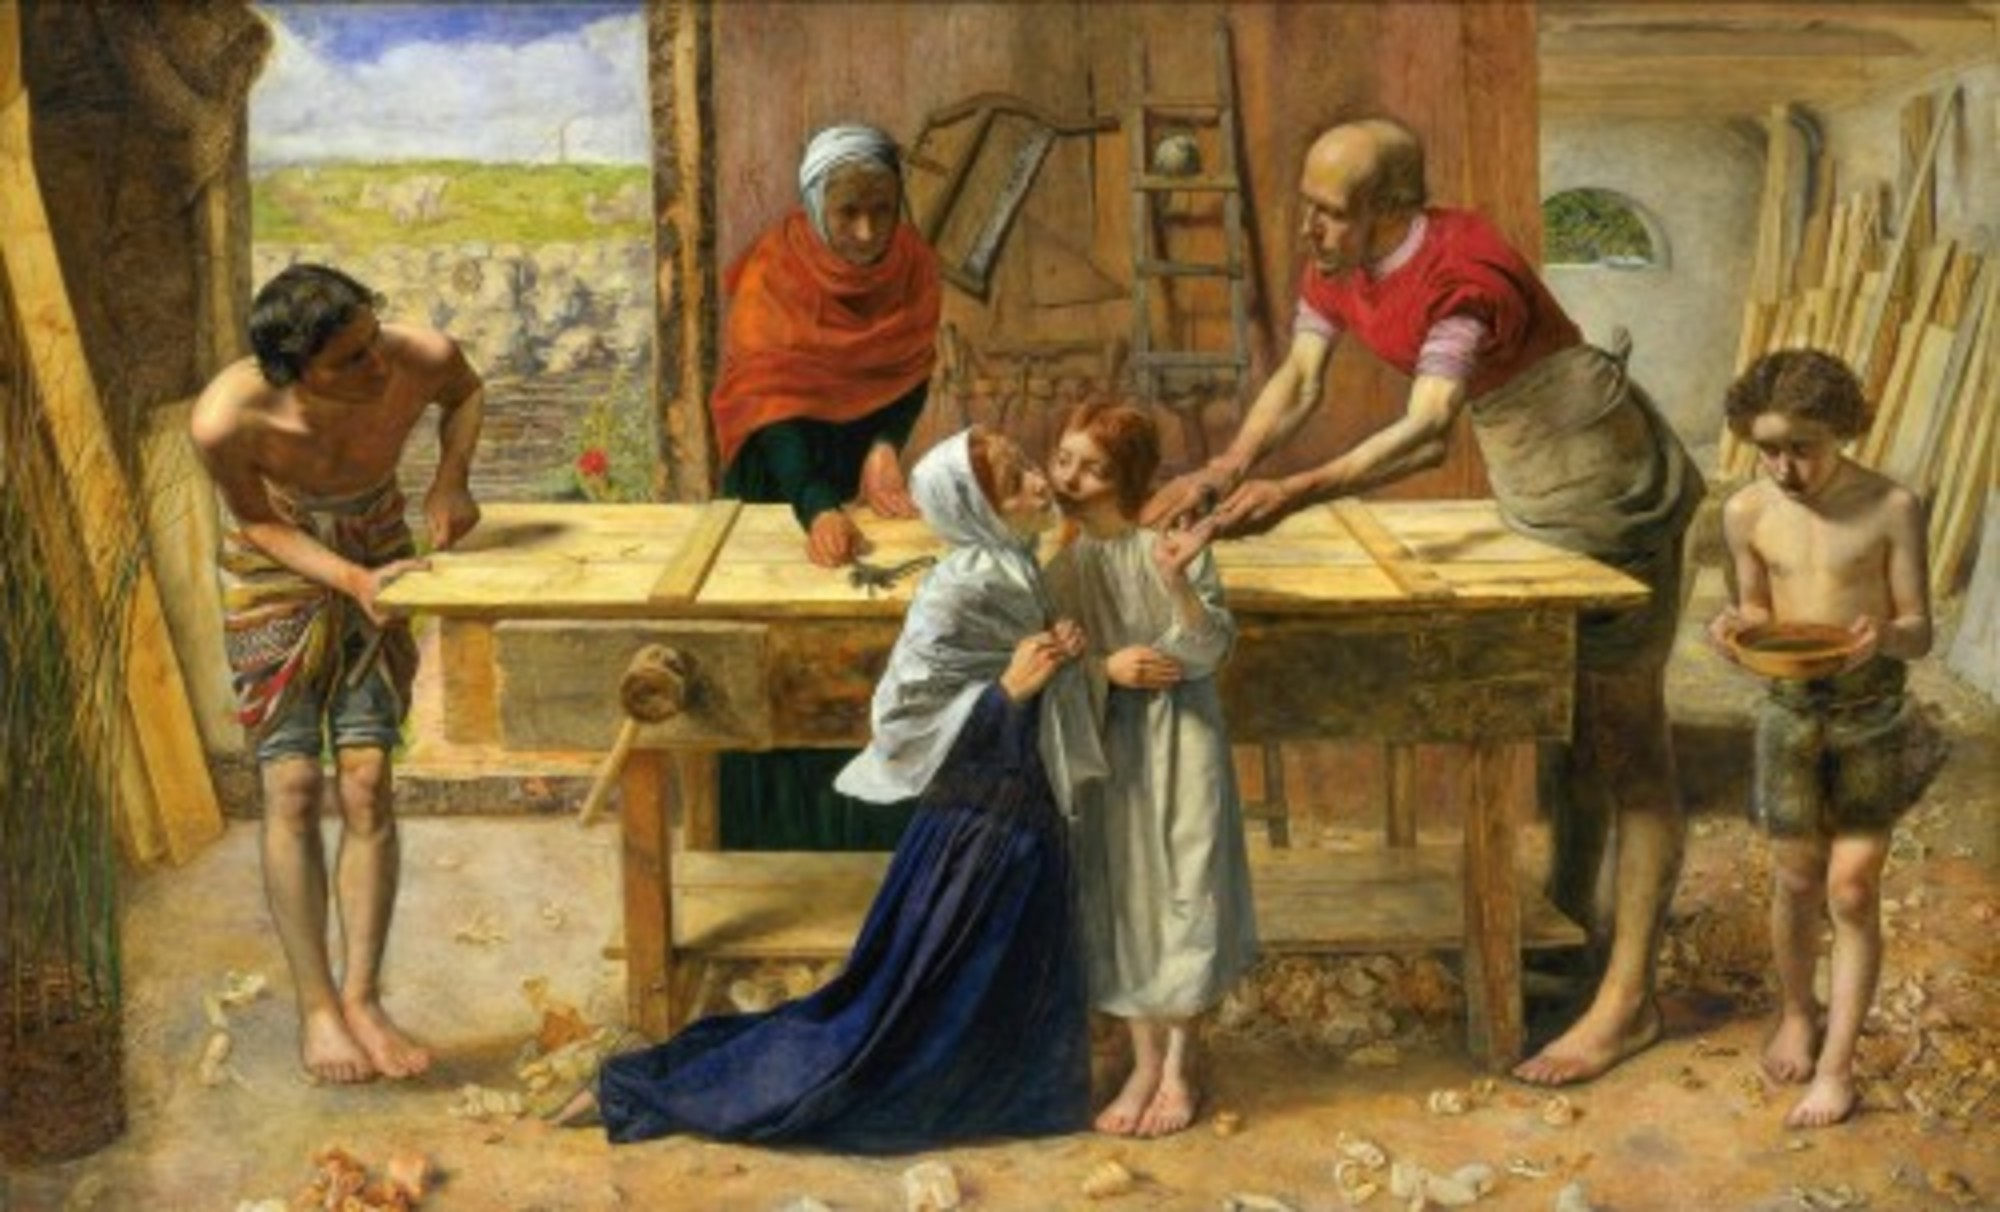 Sir-John-Everett-Millais---Christ-in-the-House-of-His-Parents-The-Carpenters-Shop-Tate-Britain.jpg